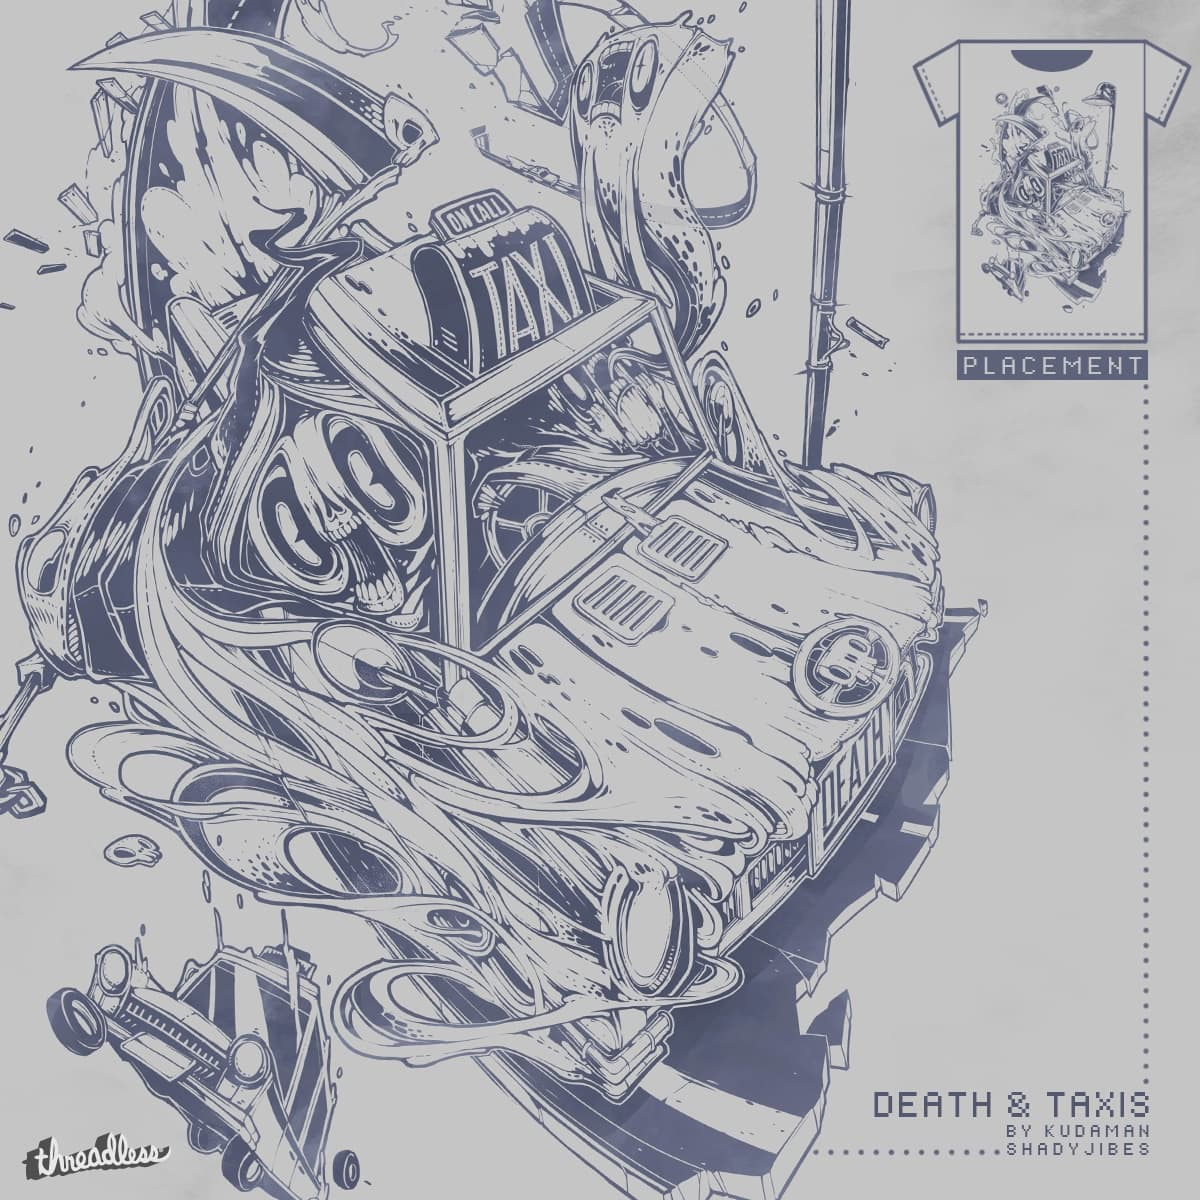 Death and Taxis by Kudaman and Shadyjibes on Threadless